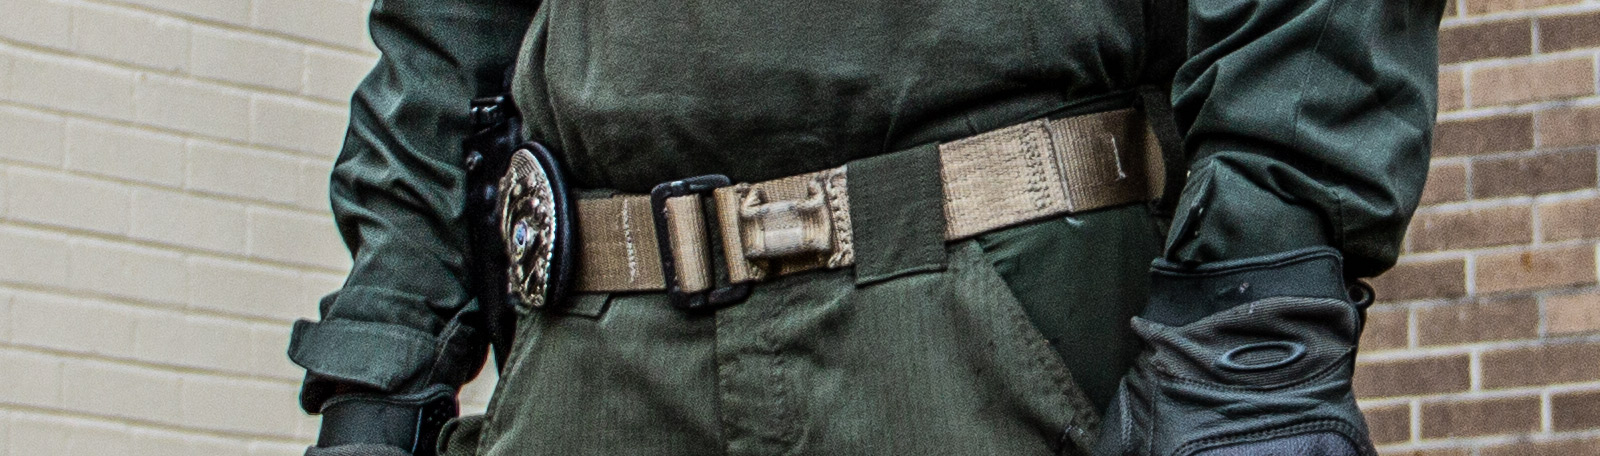 Apparel - Rigger's Belts Category